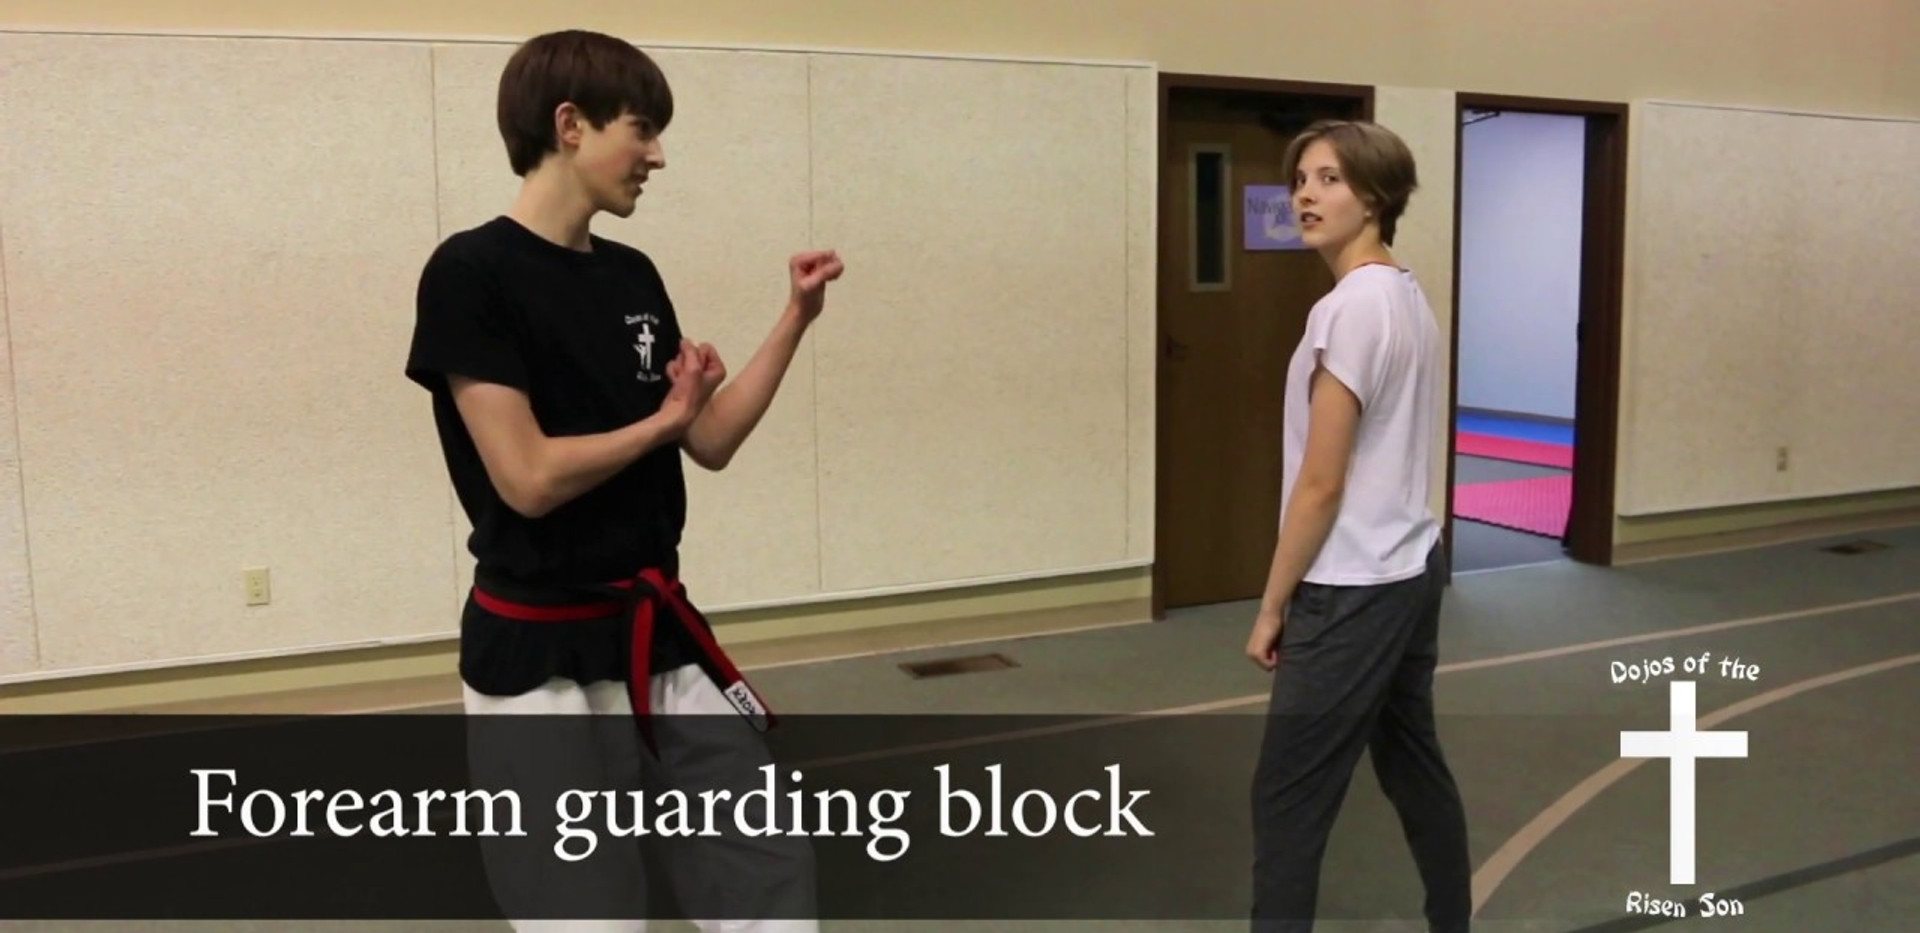 Forearm guarding block